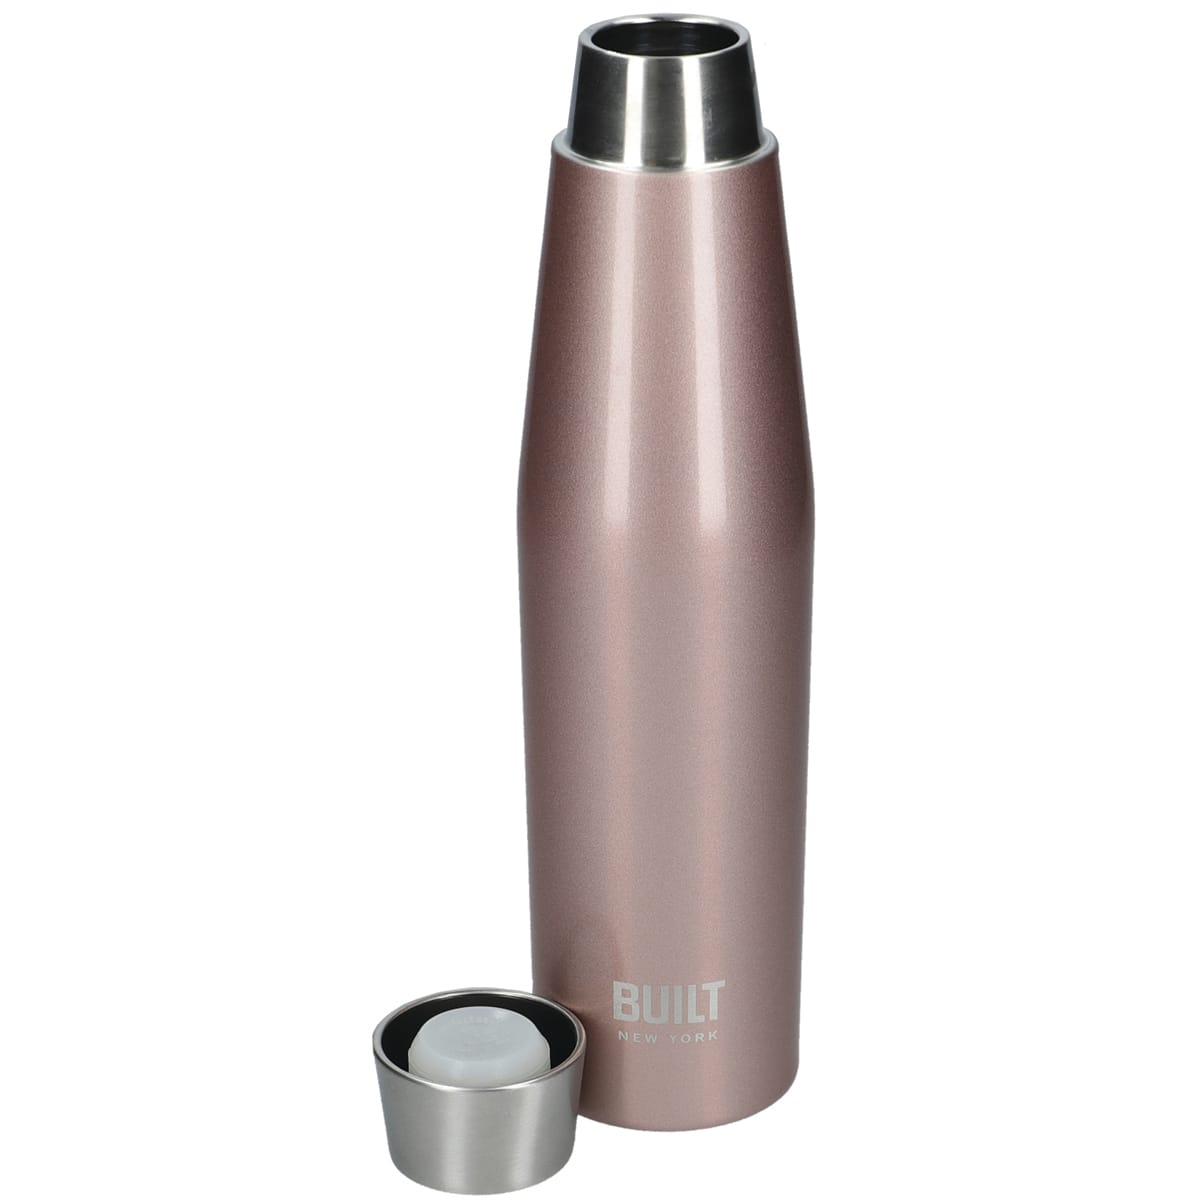 Perfect Seal Water Bottle 540ml, colour Rose Gold, double walled, vacuum-insulated body, stays cold for up to 24 hours and hot up to 6 hours, BPA Free